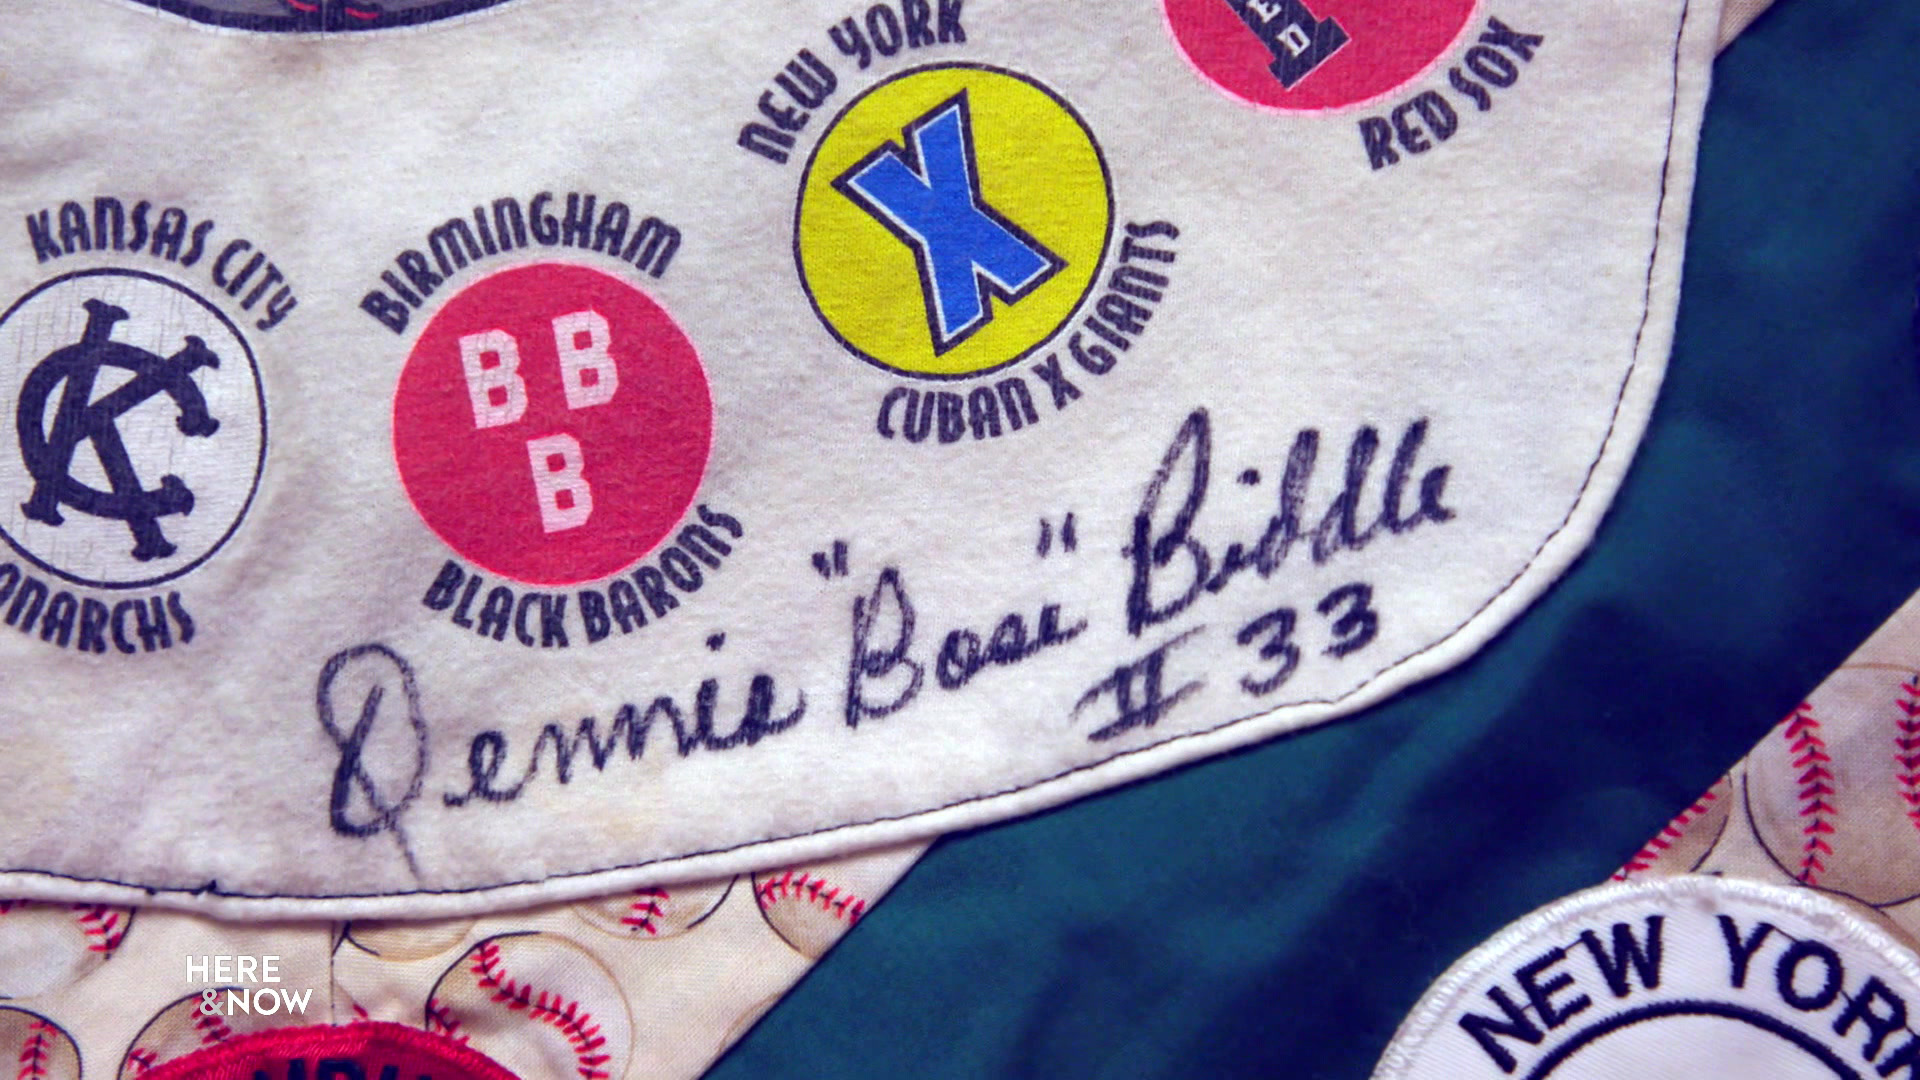 """The autograph of Dennis """"Boss"""" Biddle #33 appears next to the logos of Negro Leagues baseball teams on a quilt commemorating their history."""